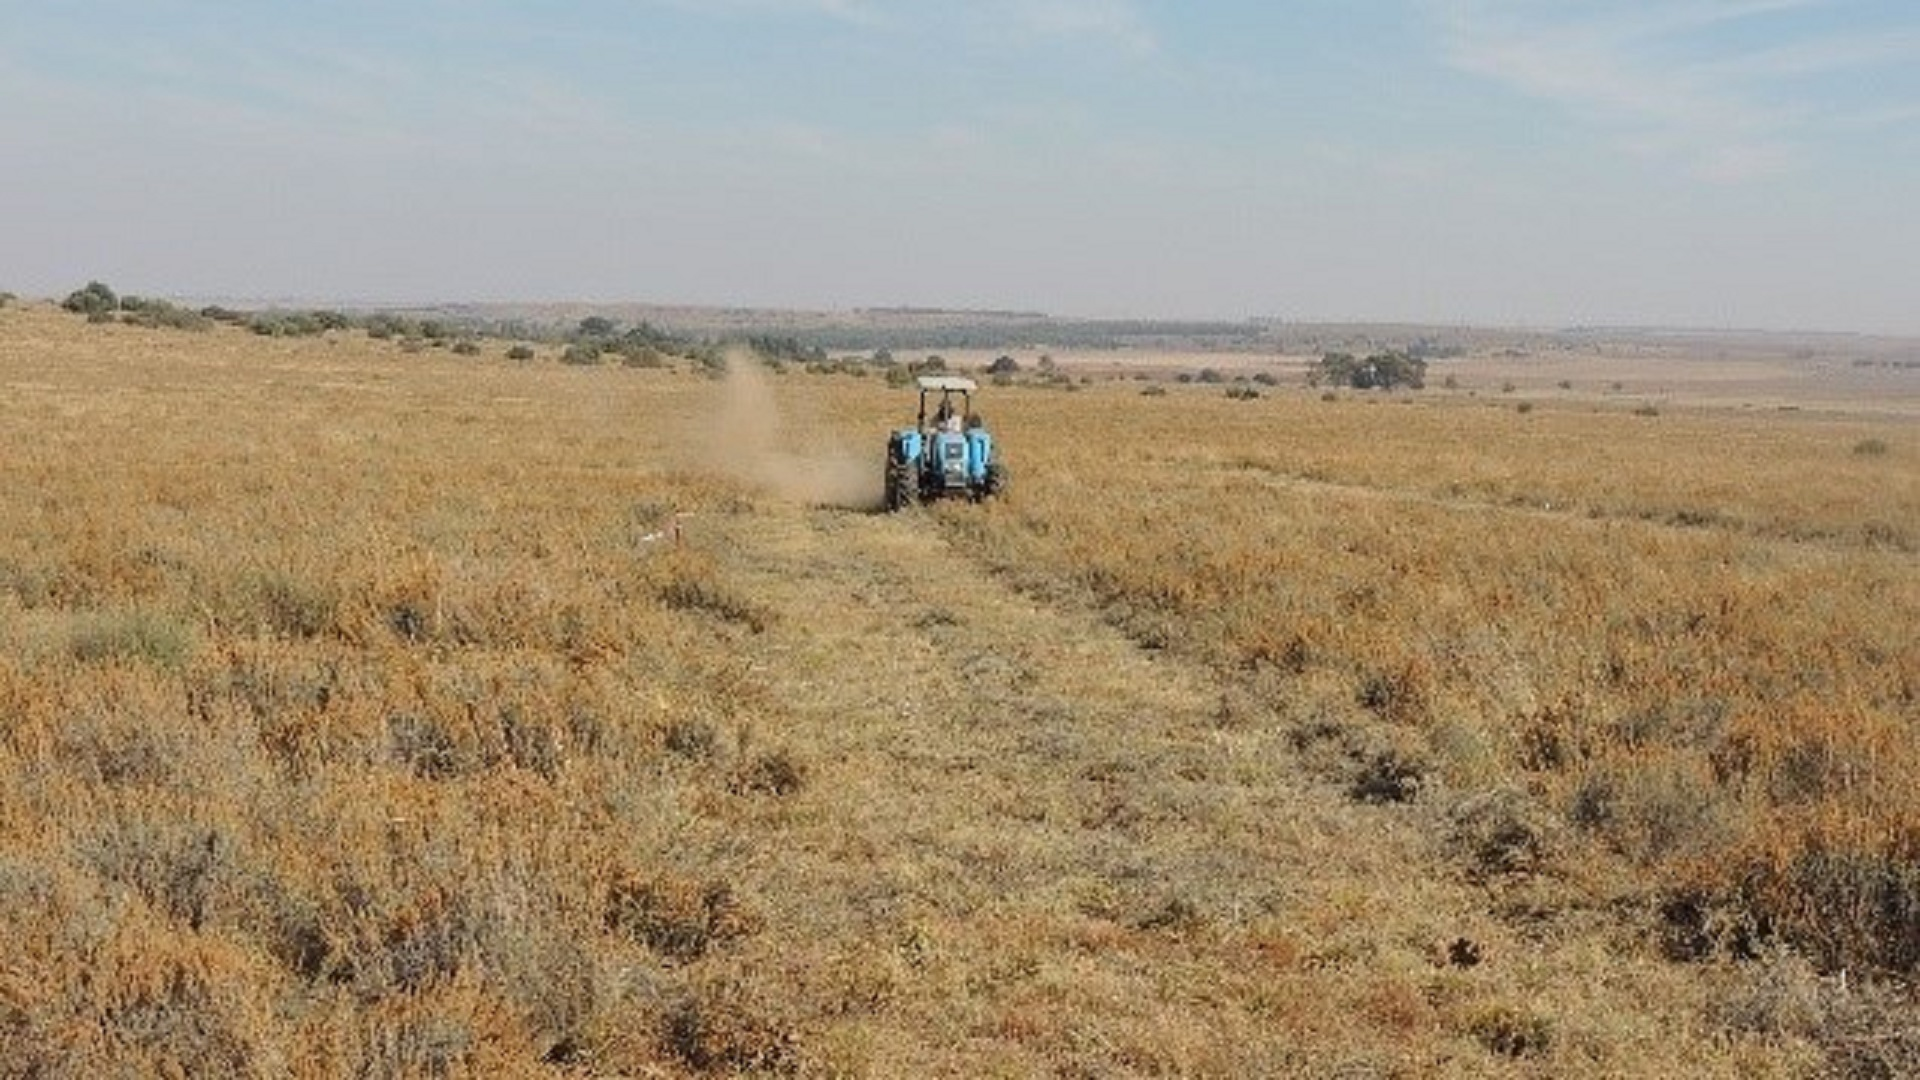 An experimental site under encroachment by bankrupt bush. Agricultural Research Council research shows that there may be nutritional value in some of the plants that invade rangelands that are not burnt regularly or overgrazed. Photo: Supplied/Food For Mzansi